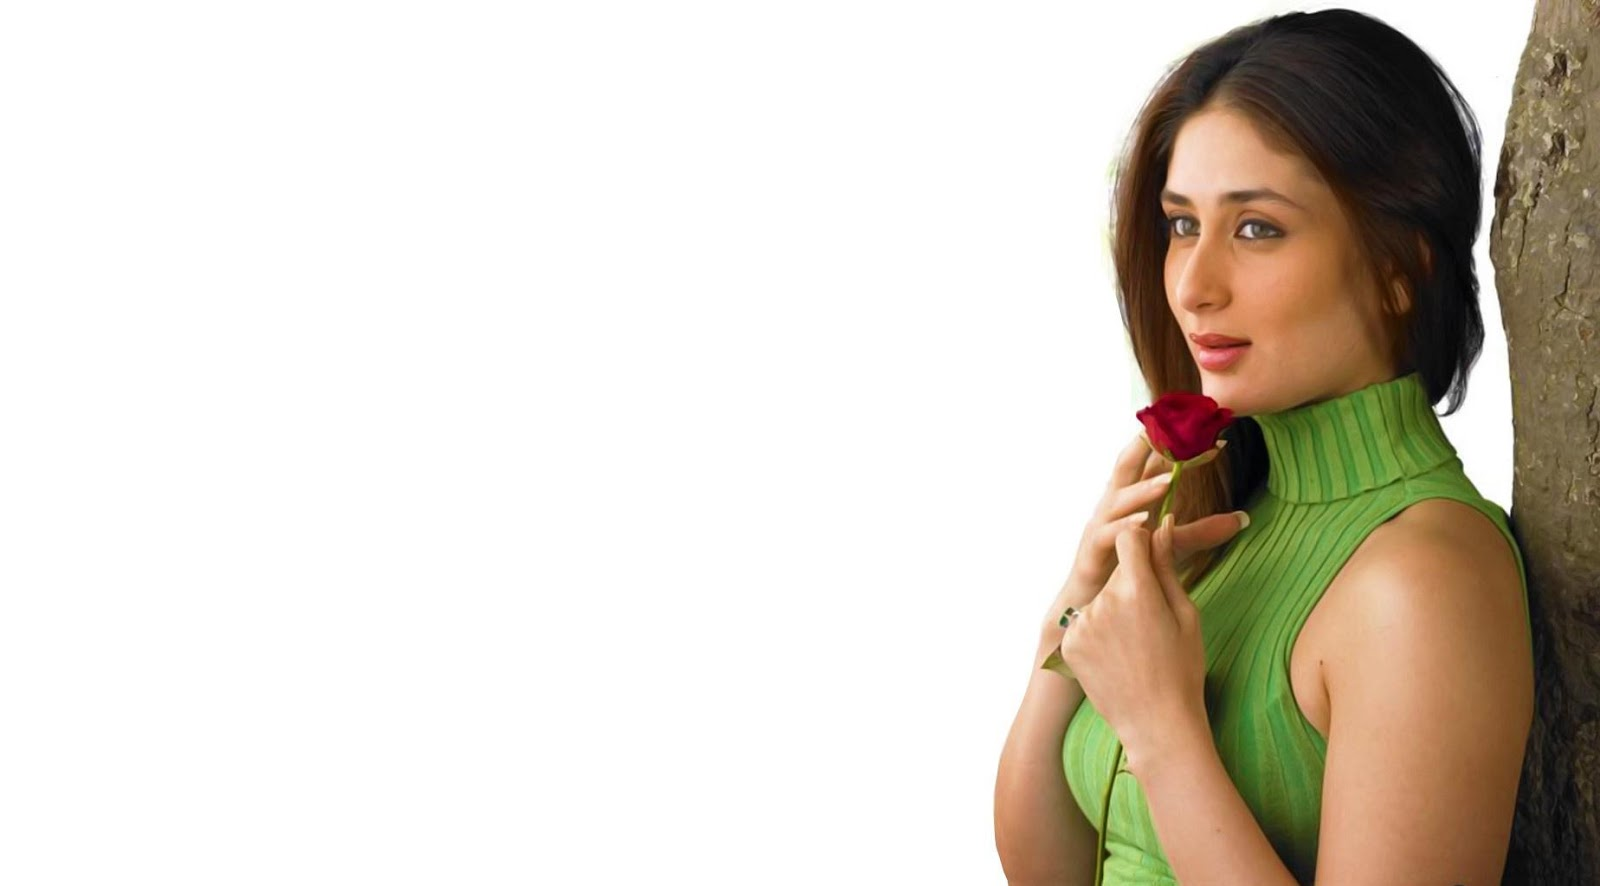 Hollywood Celebrities Kareena Kapoor Photoshoot Hd 6-4640